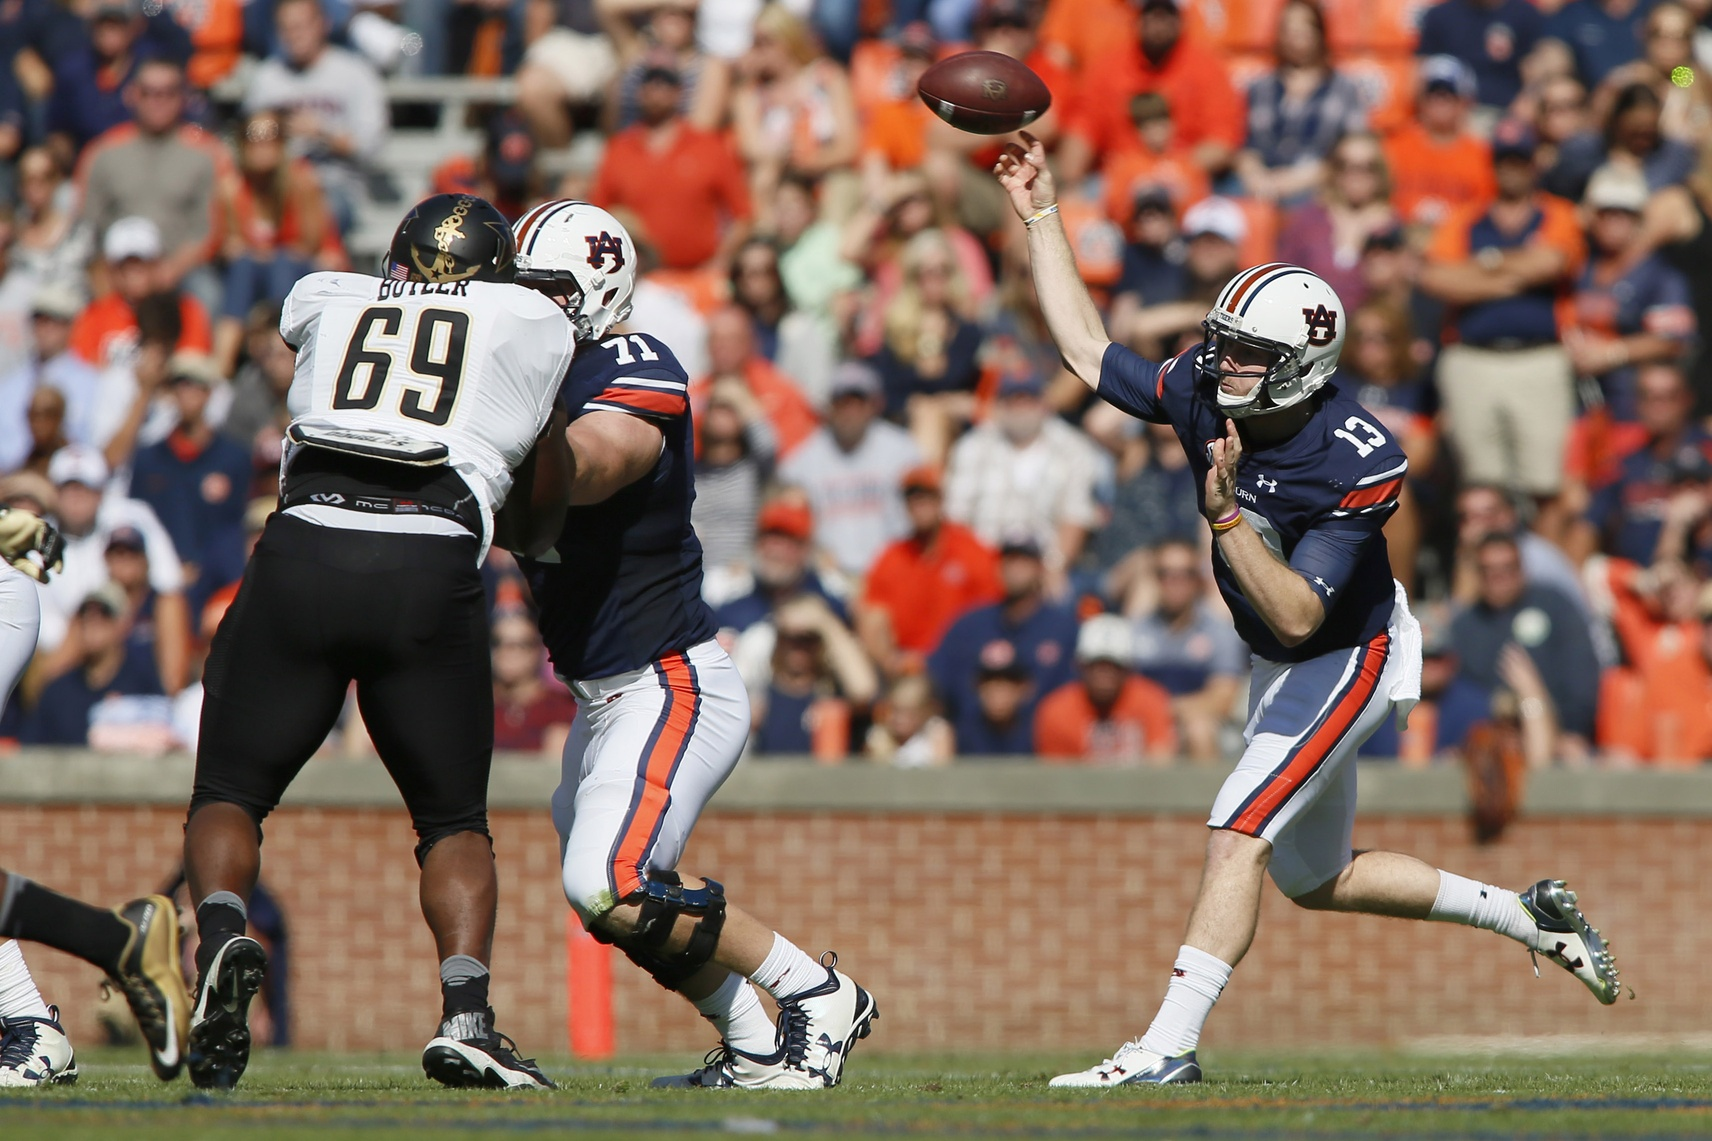 Nov 5, 2016; Auburn, AL, USA; Auburn Tigers quarterback Sean White (13) throws a pass against the Vanderbilt Commodores during the third quarter at Jordan Hare Stadium. The Tigers beat the Commodores 23-16. Mandatory Credit: John Reed-USA TODAY Sports